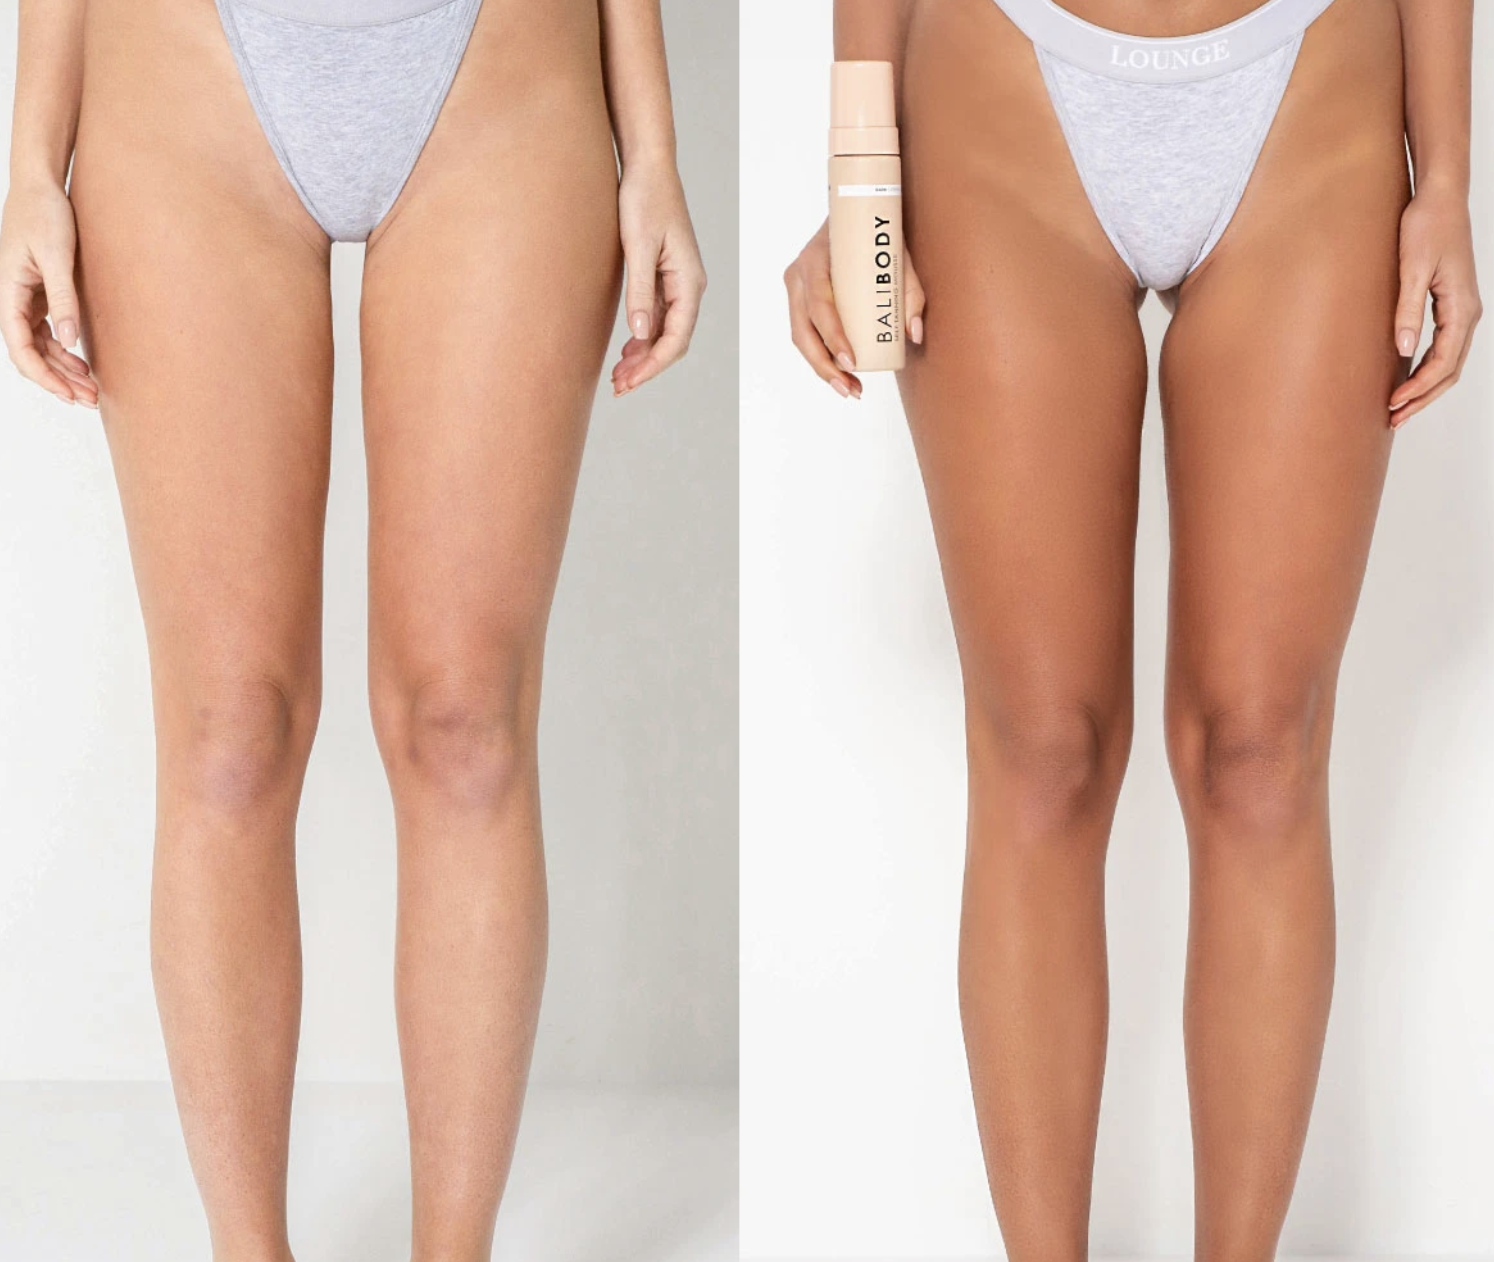 Model's before and after photo. The after photo shows a tanner, streak-free complexion